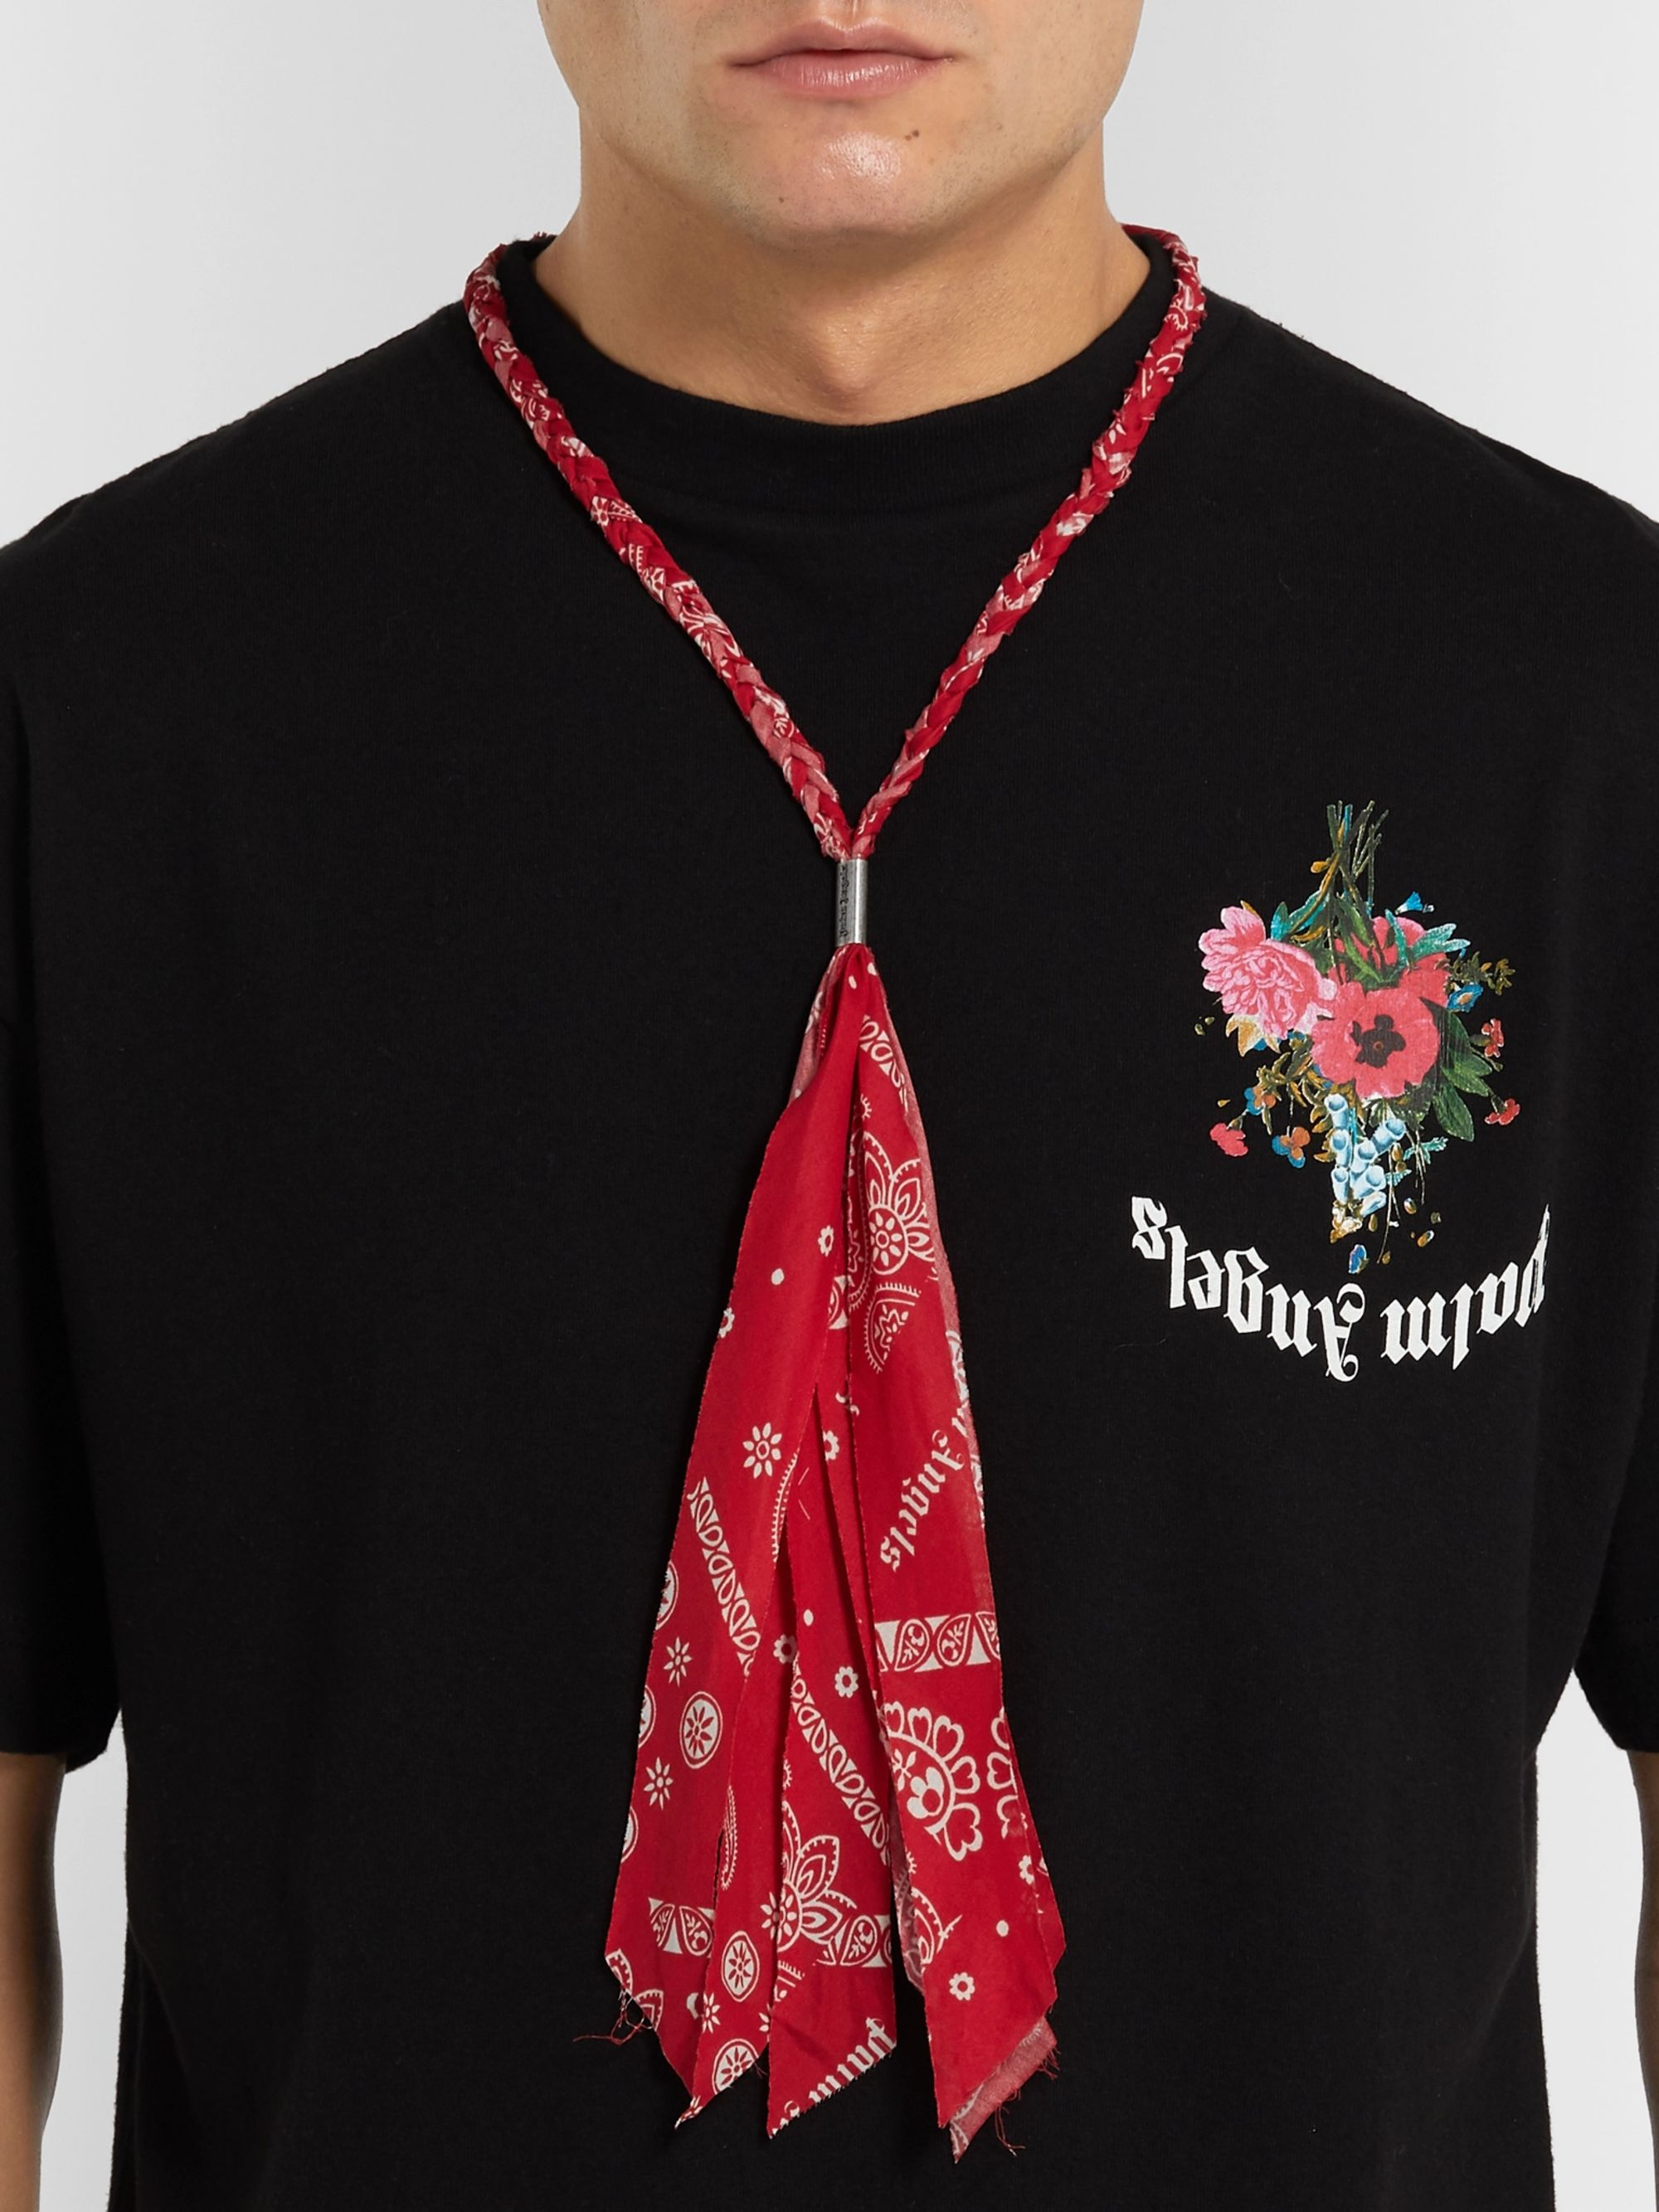 Palm Angels Bandana-Print Cotton Necklace